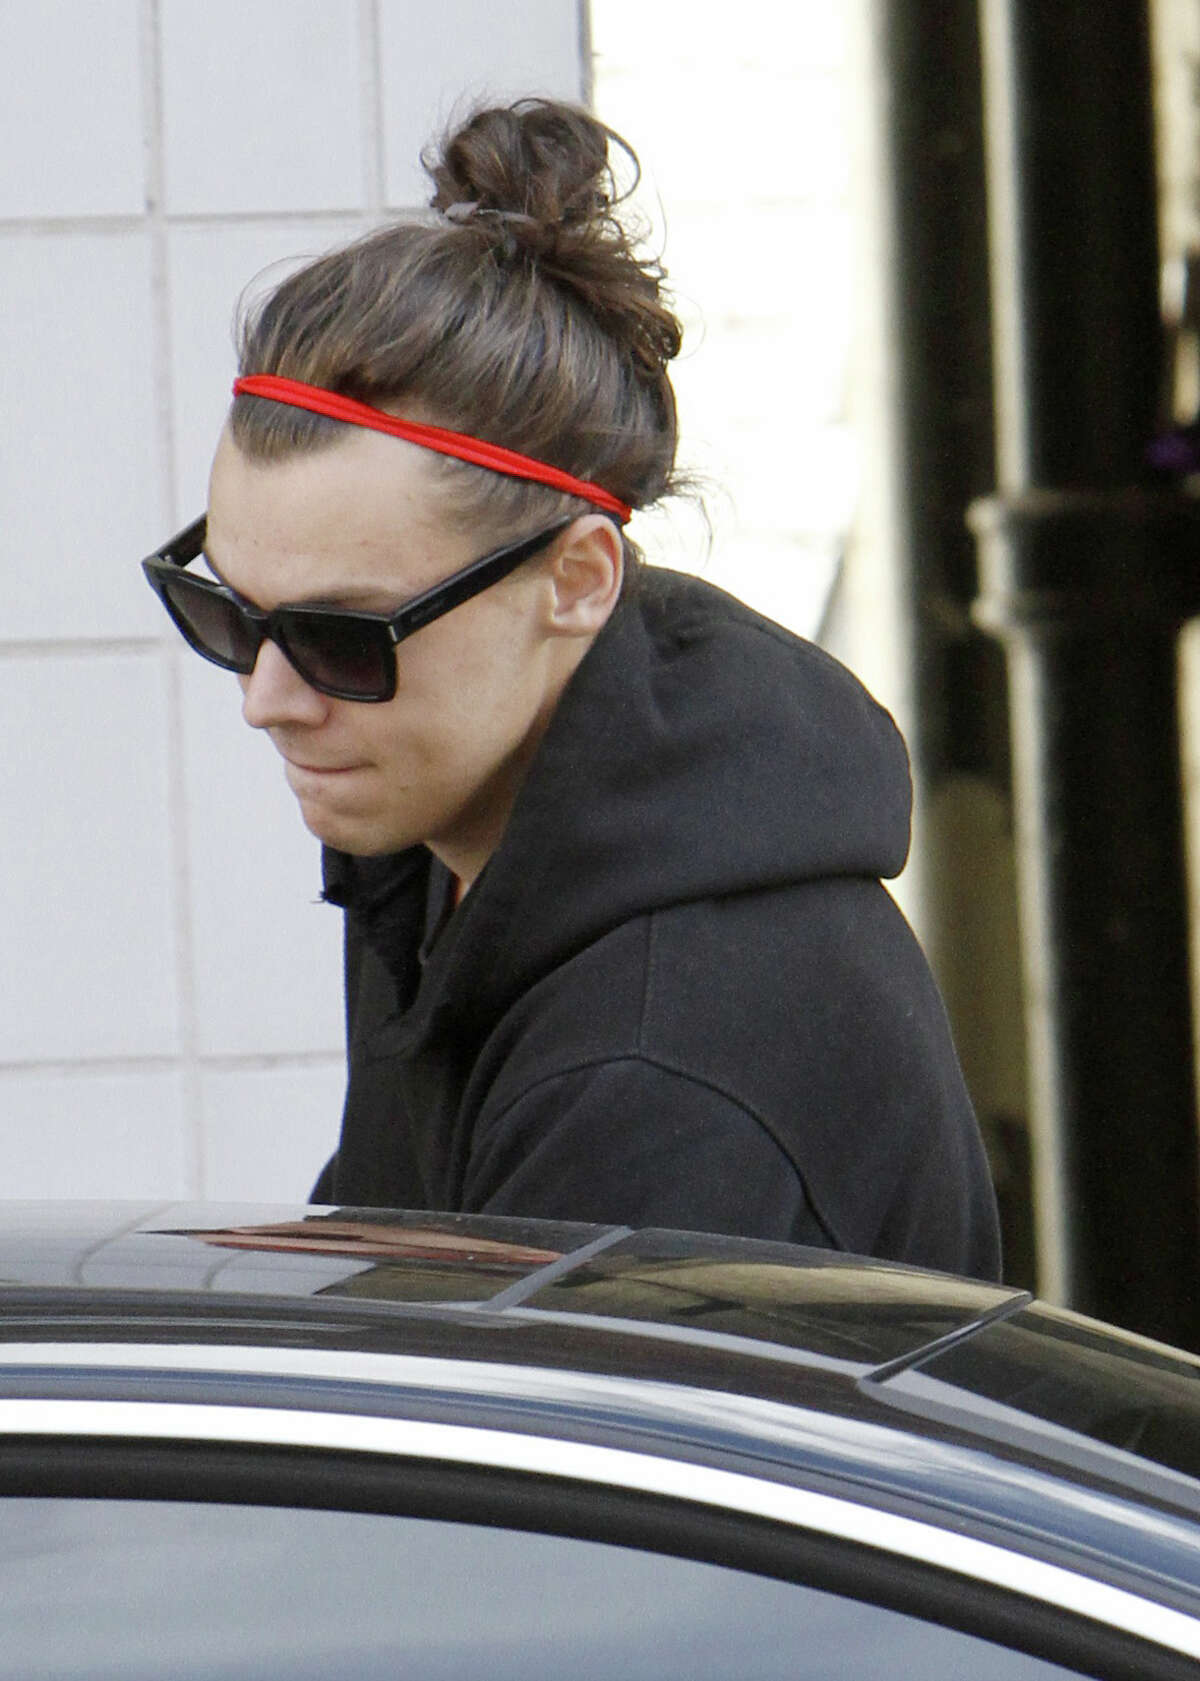 Man buns were all the rage. We don't know why. Here, Harry Styles of the British band One Direction was sighted wearing one in September.